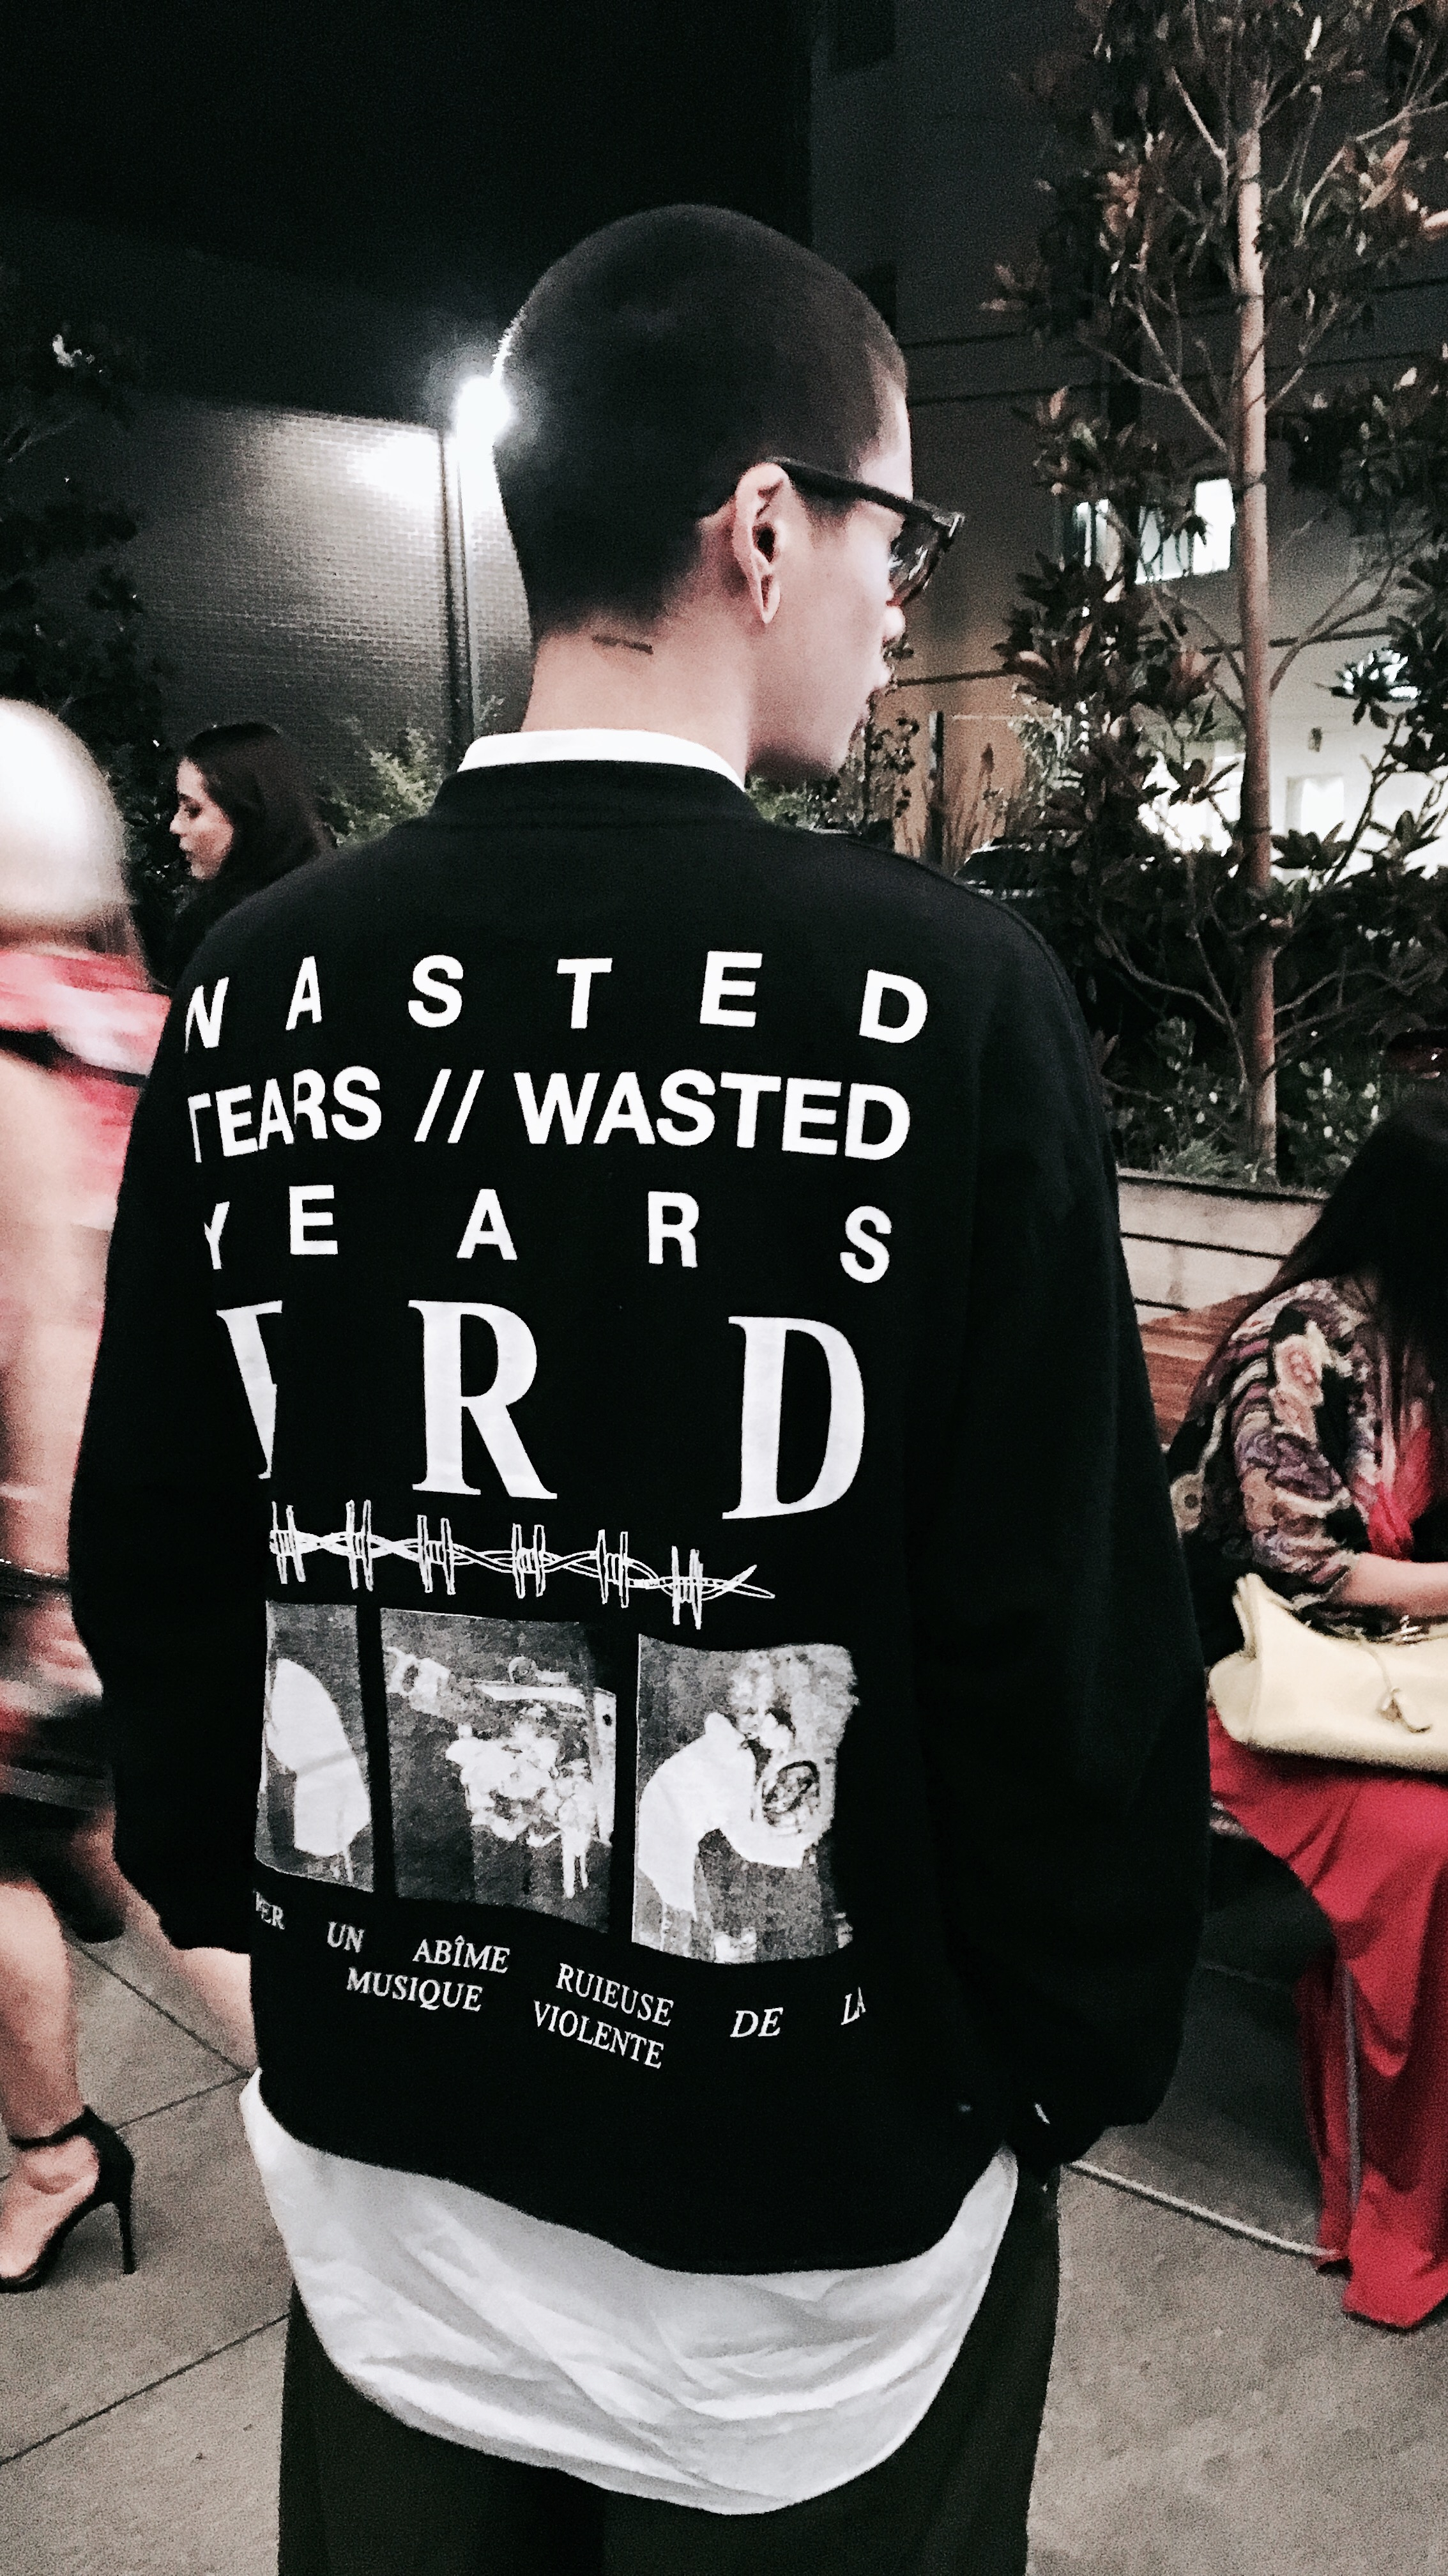 WASTED YEARS/WASTED TEARS